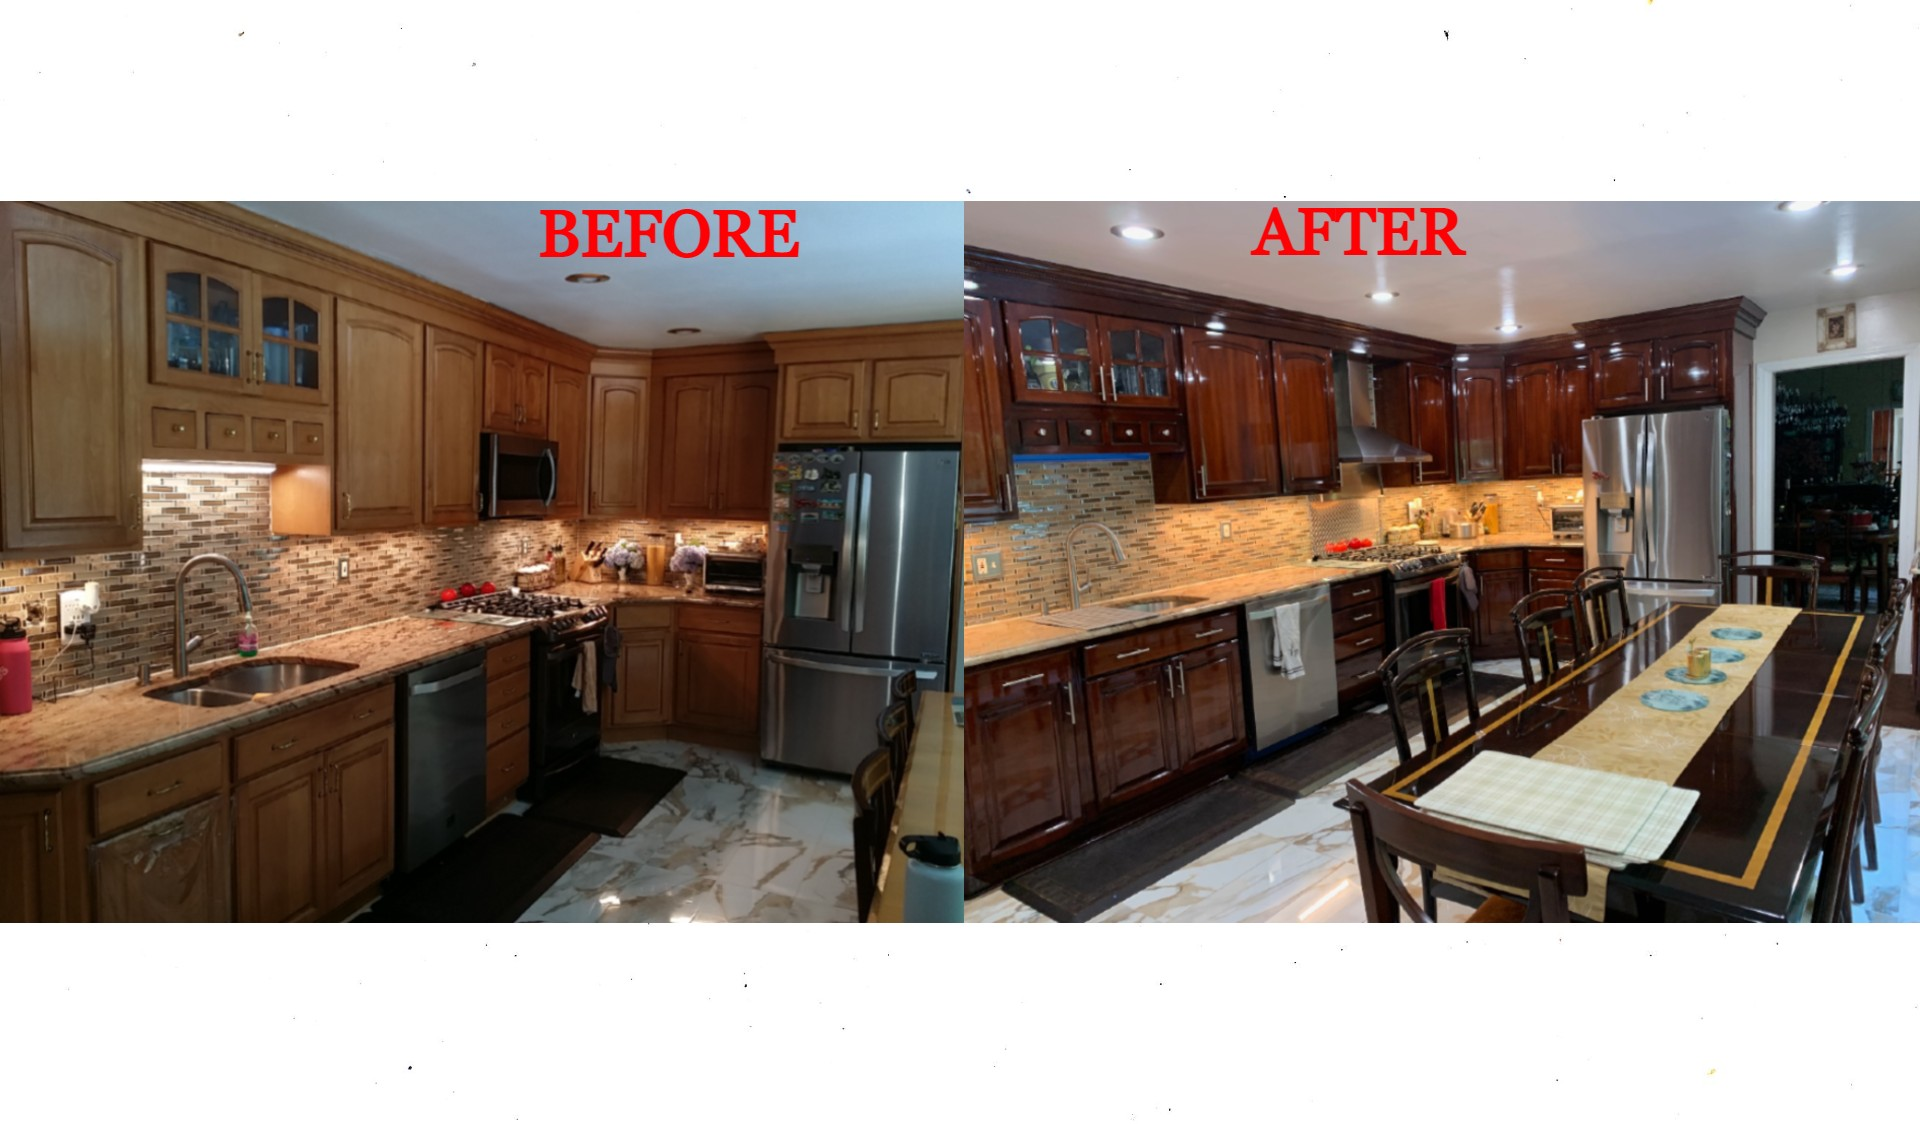 Kitchen Cabinet Painting Before And After Kitchen Cabinet Refinishing Before And After Spray Painting Kitchen Cabinets Before And After Http Kitchencabinet Painter Com Gallery Before After